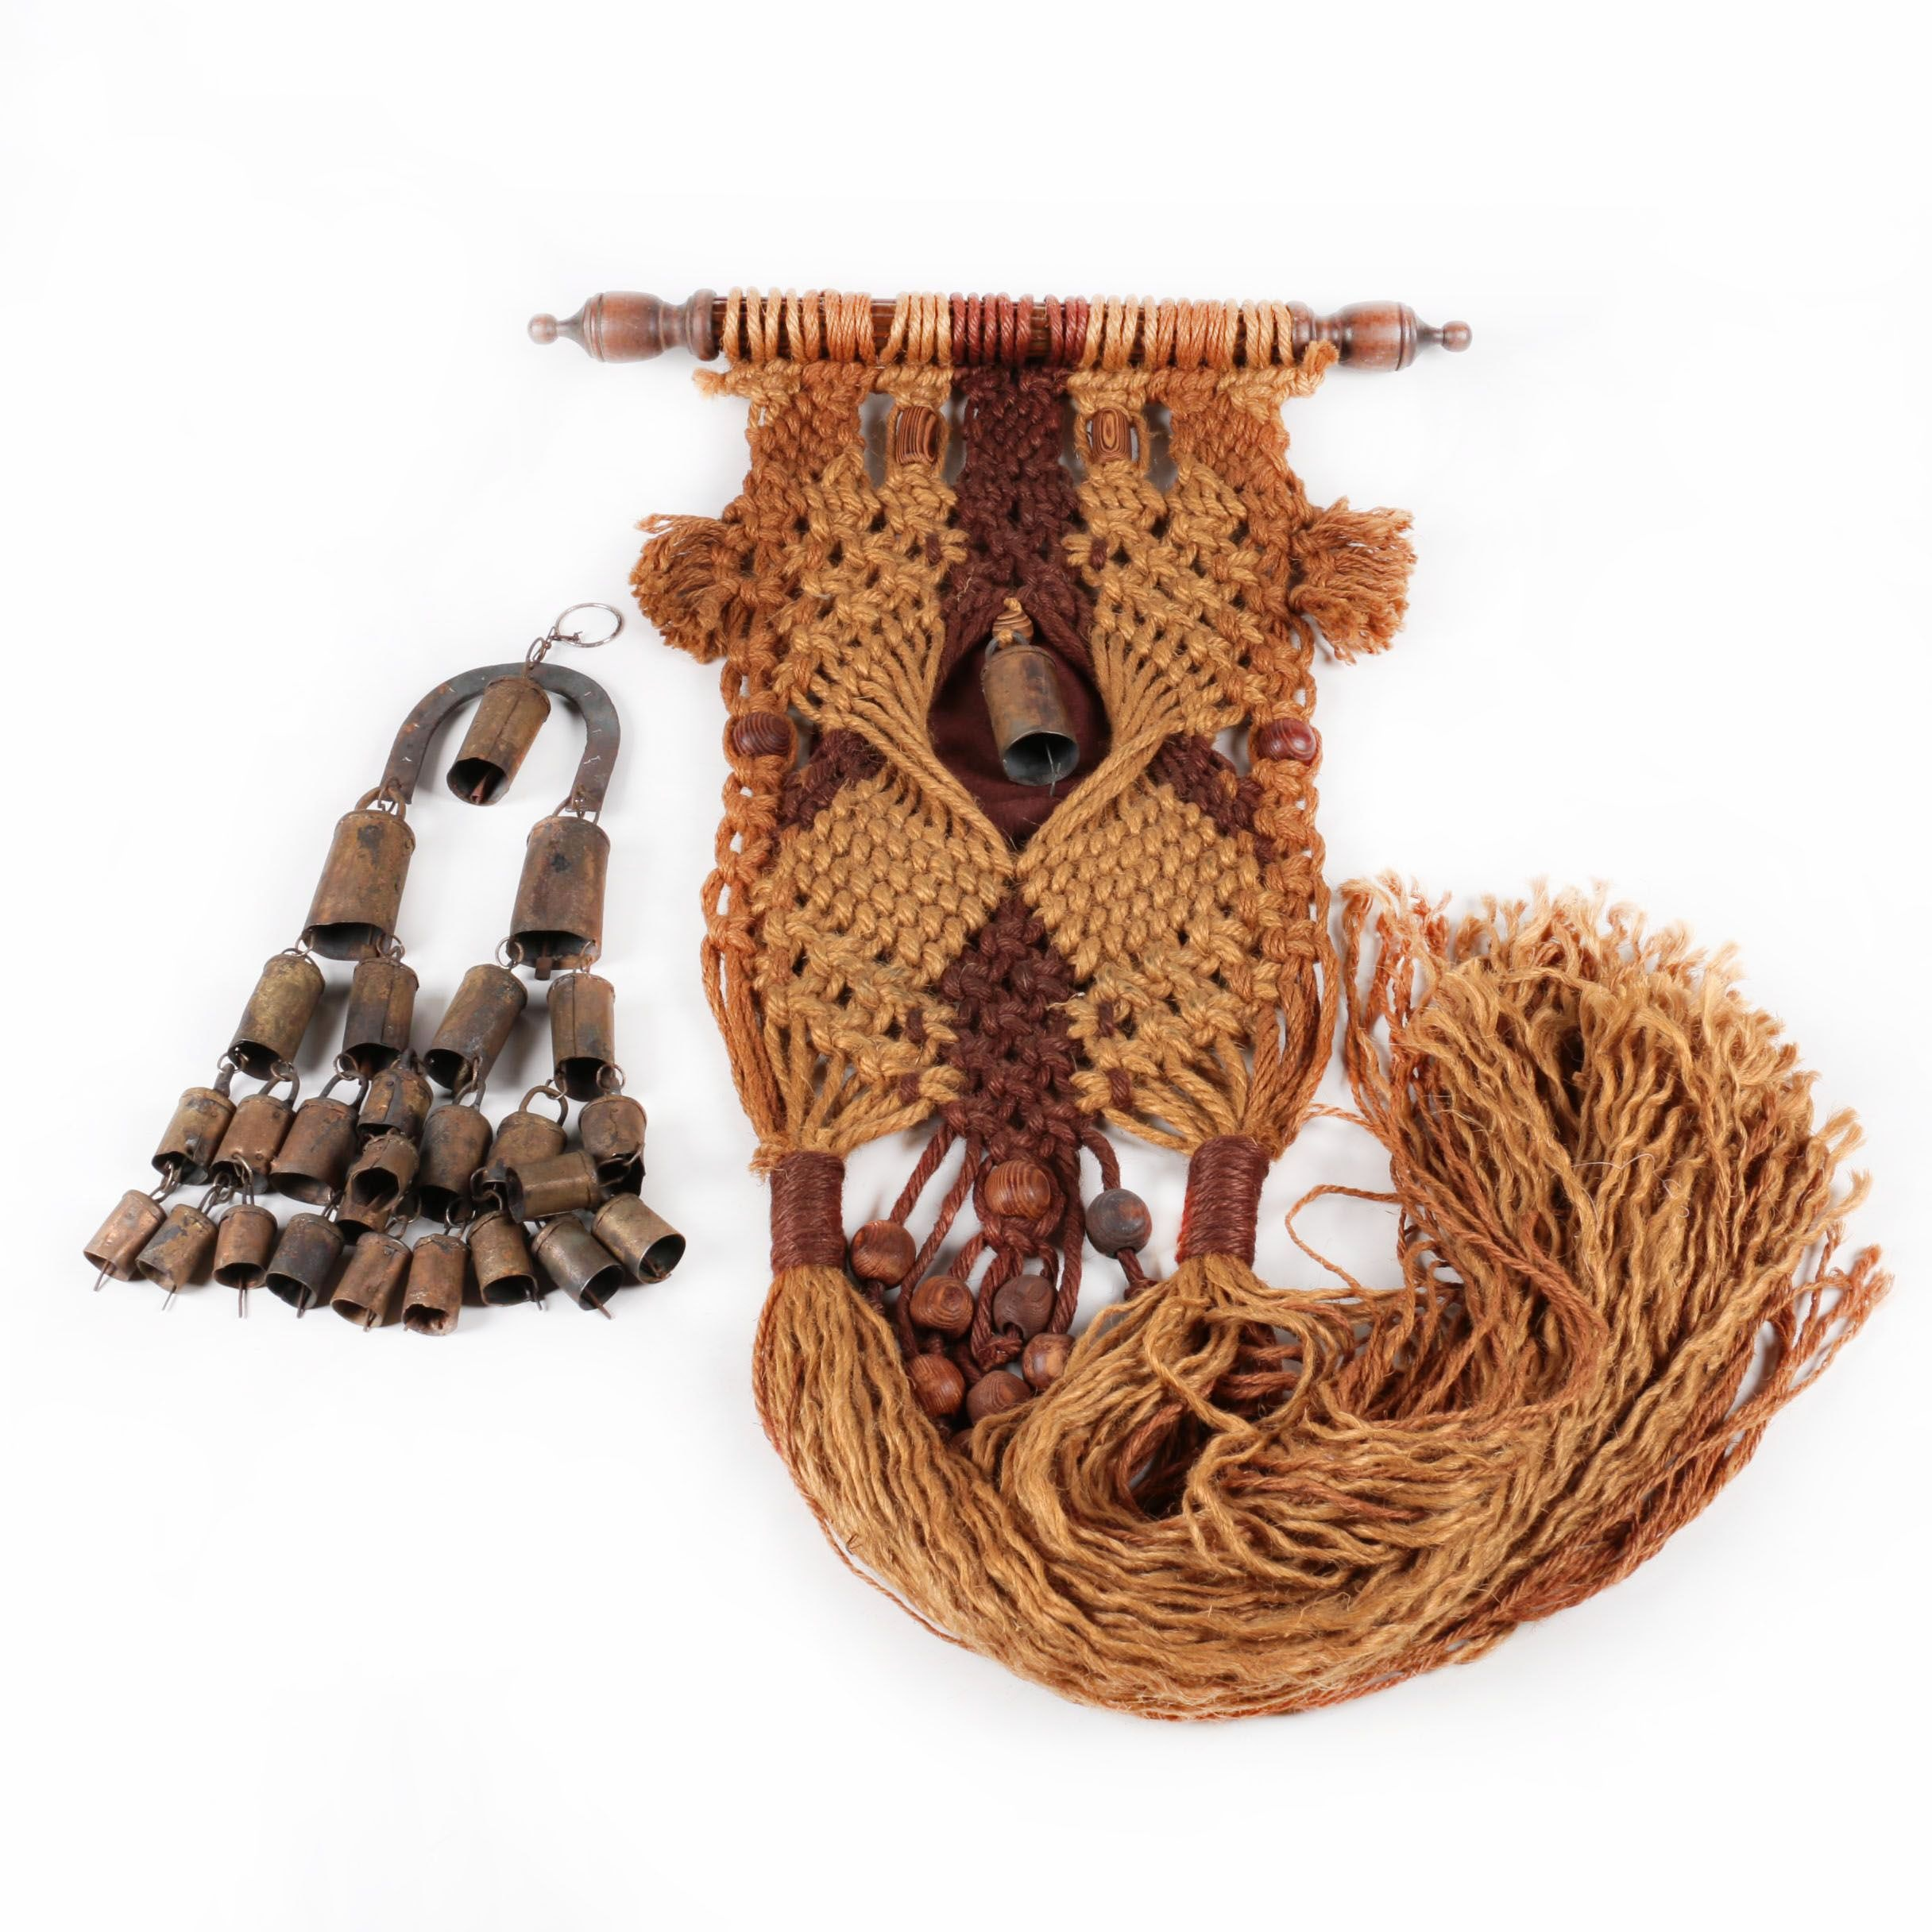 Woven Macrame Wall Hanging with Metal Bells